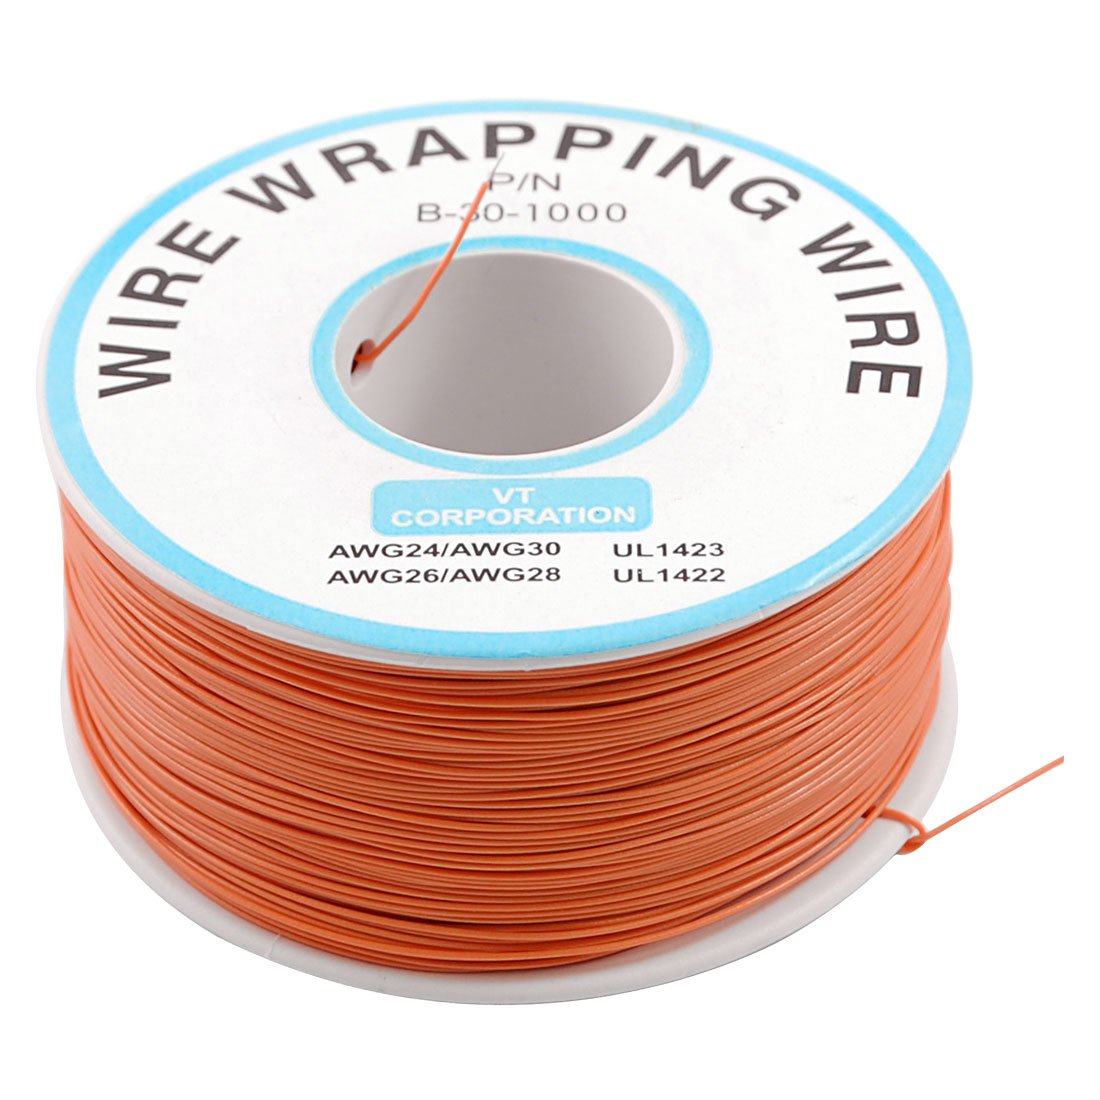 PCB Solder Orange Flexible 0 5mm Outside Dia 30AWG Wire Wrapping Wrap 1000Ft